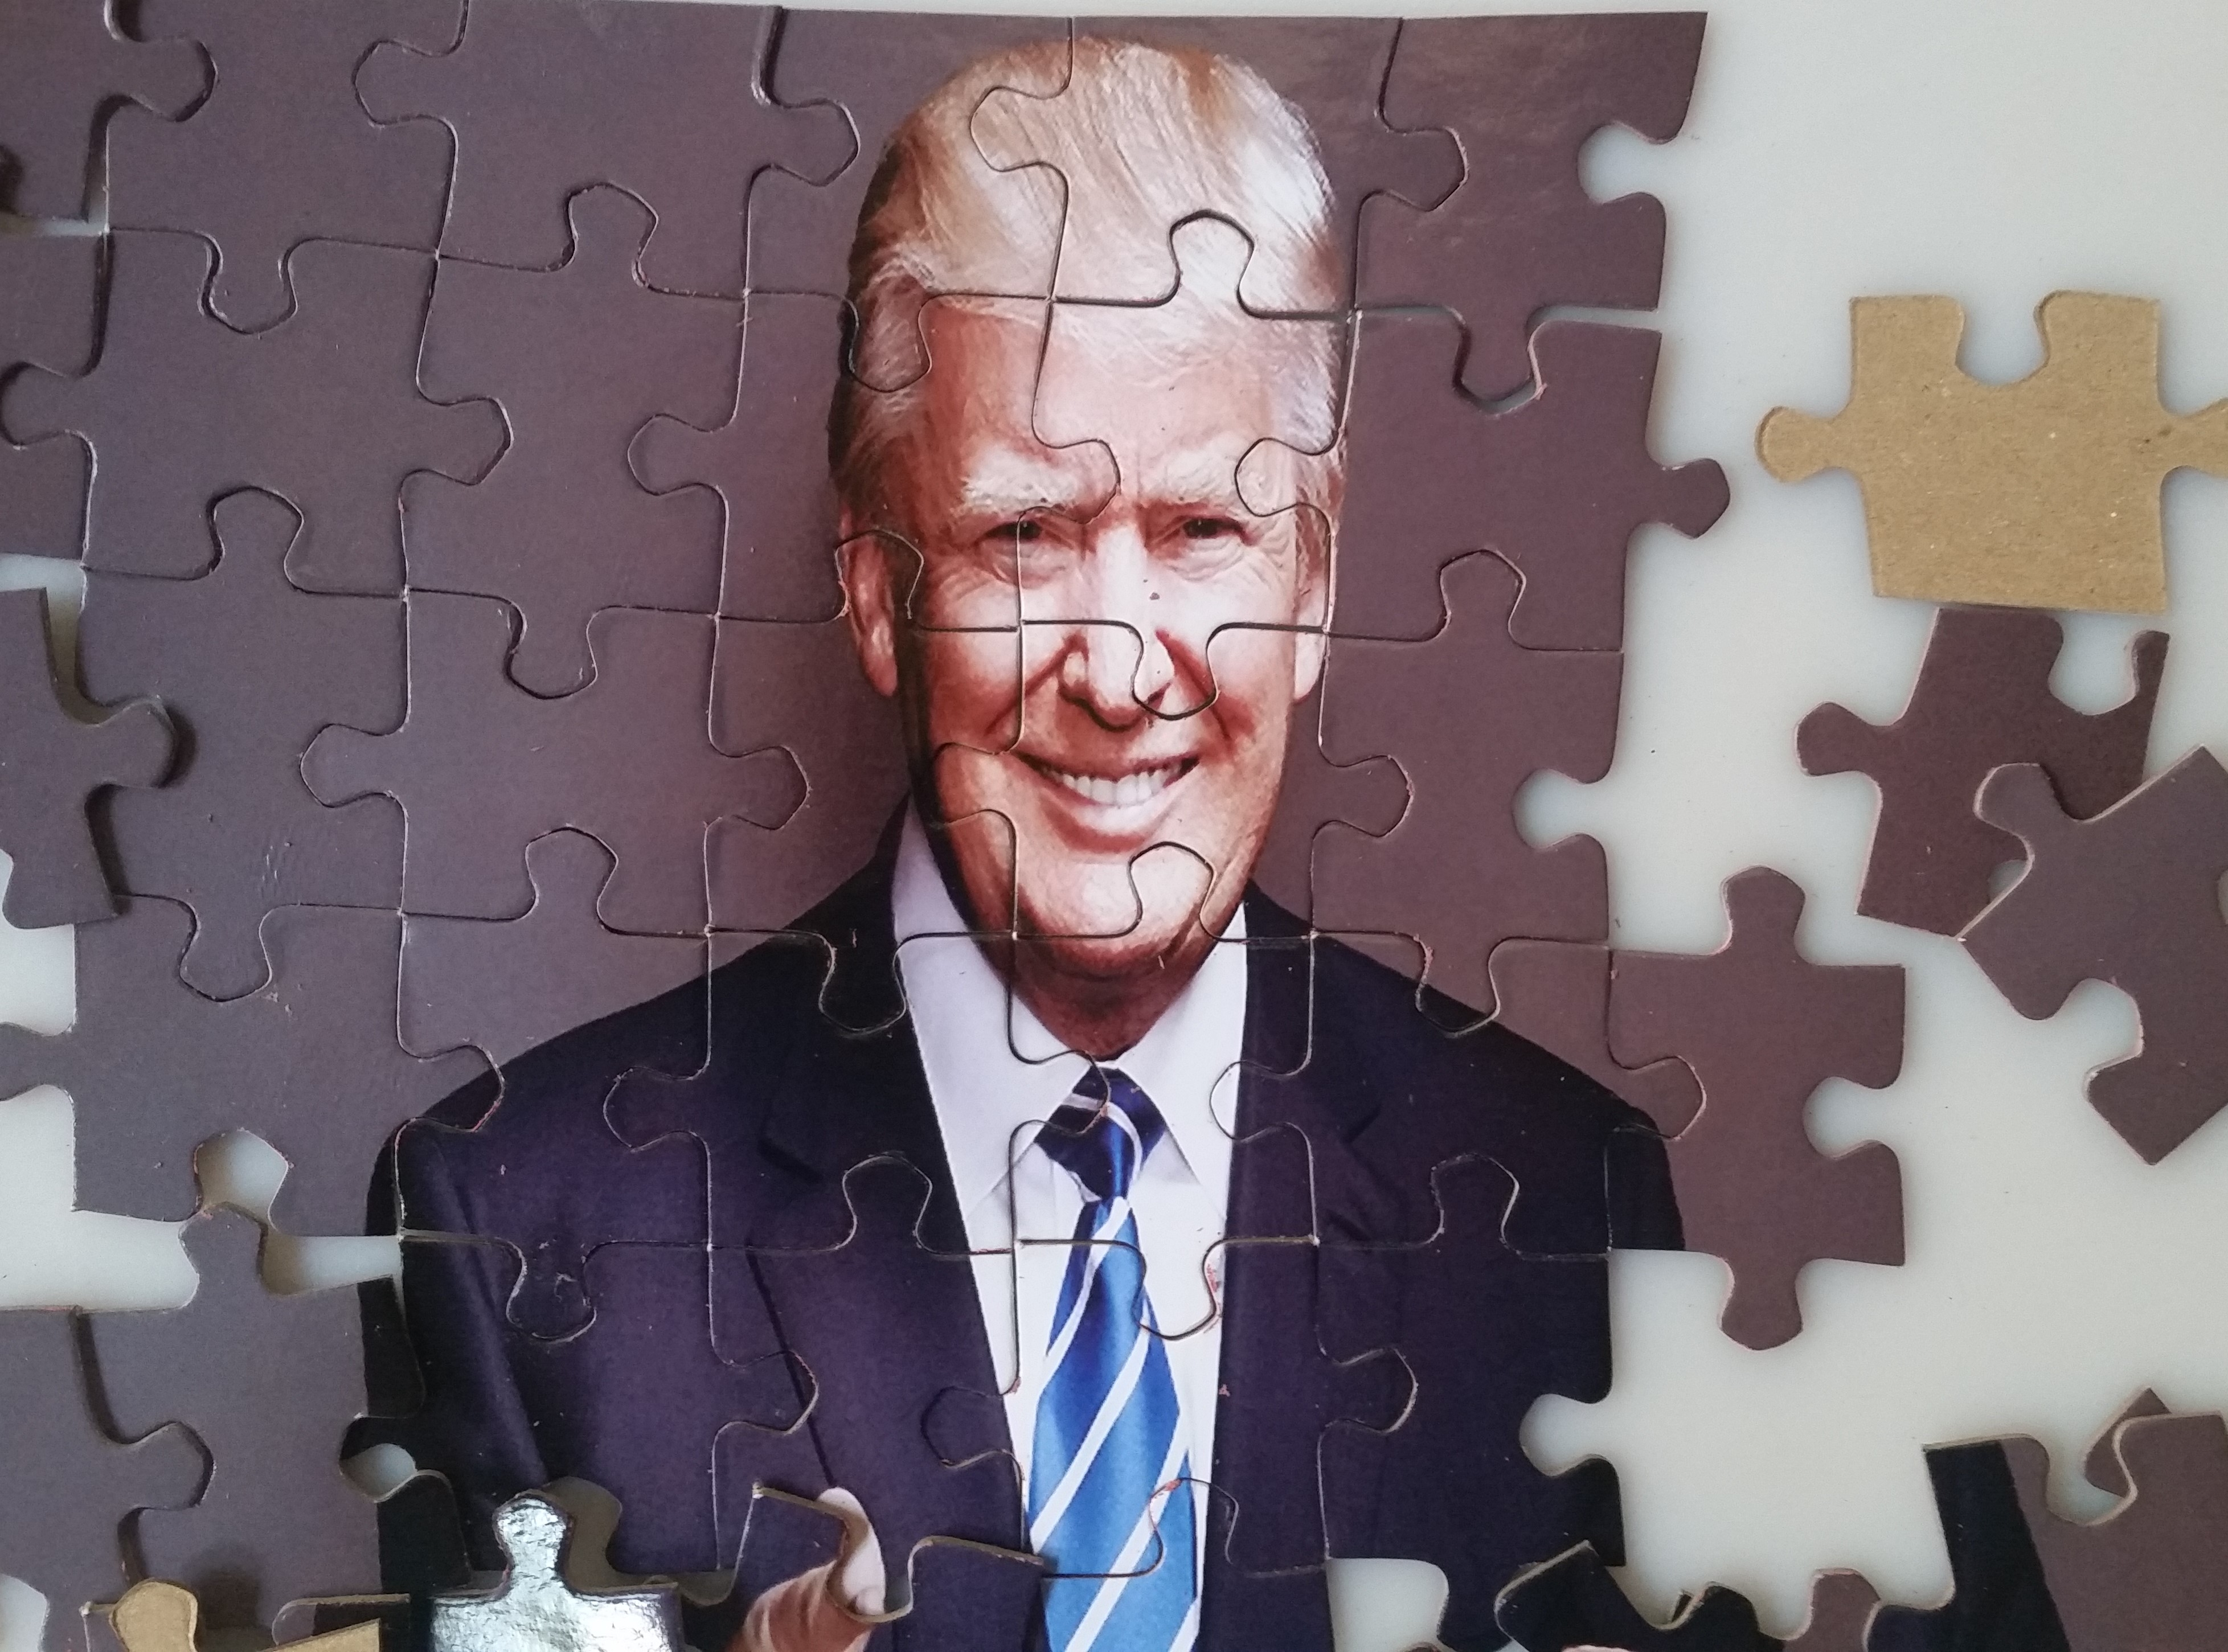 """Be the first to review """"Donald Trump puzzle"""" Cancel reply"""